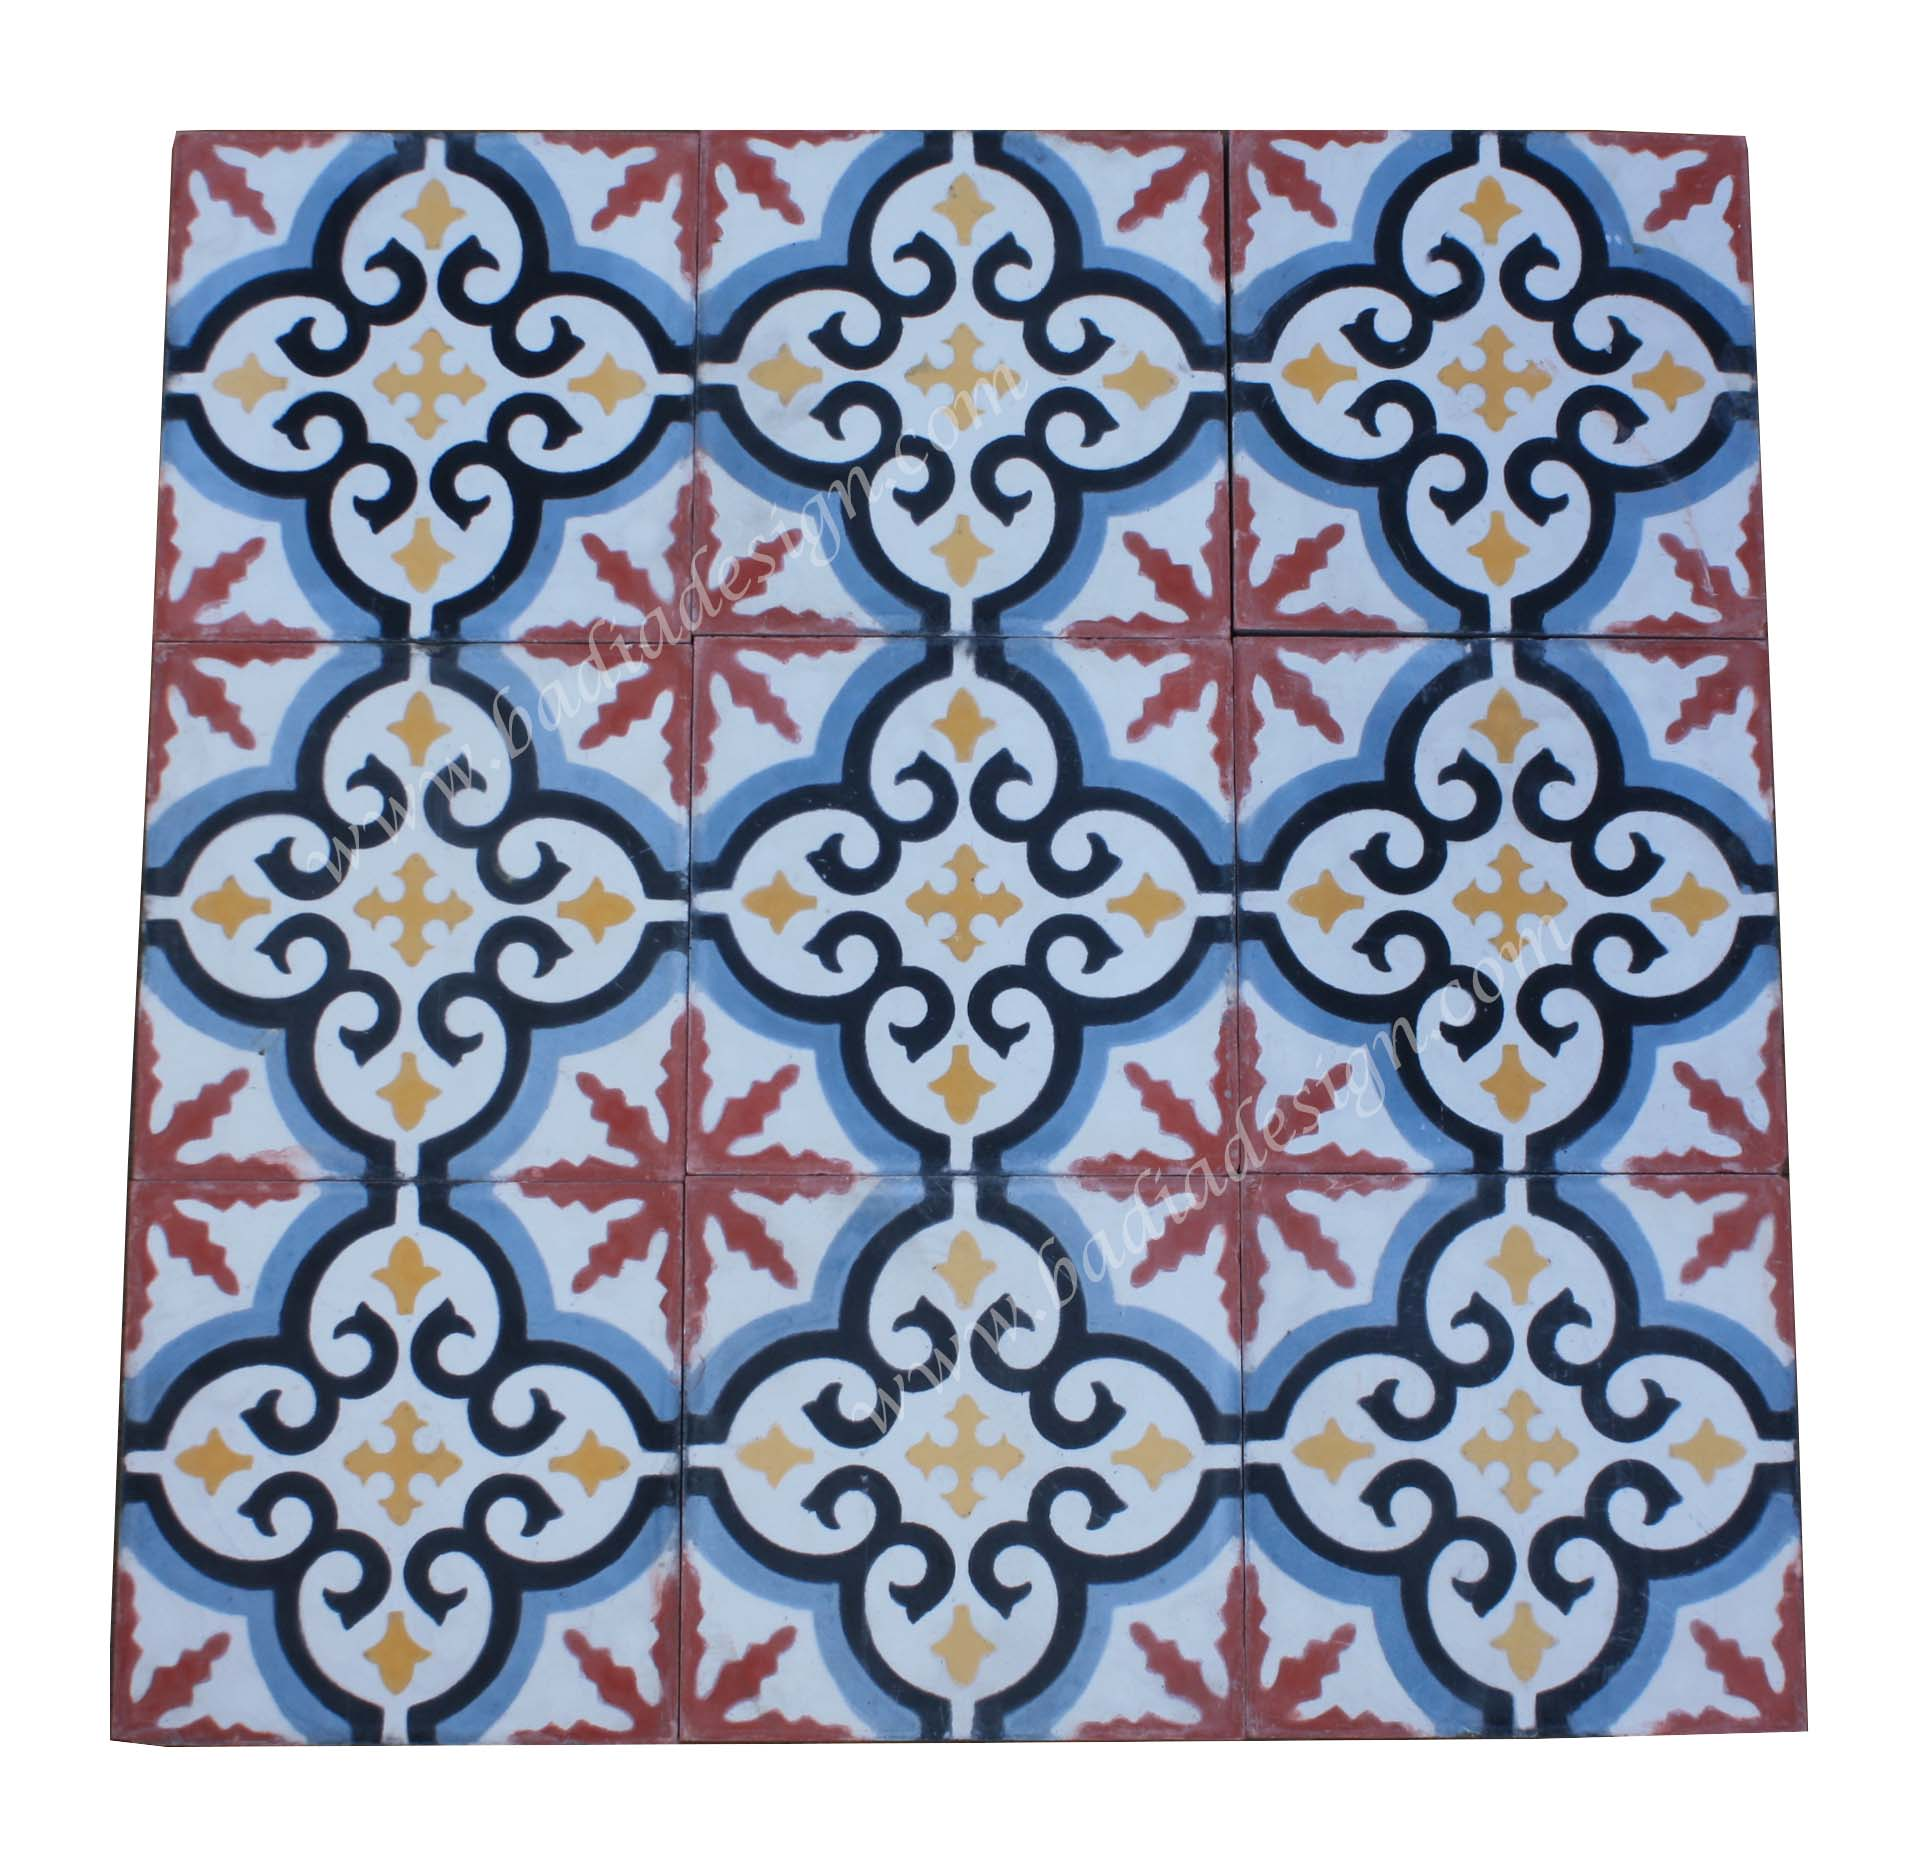 los-angeles-floor-tile-store-ct093-1.jpg